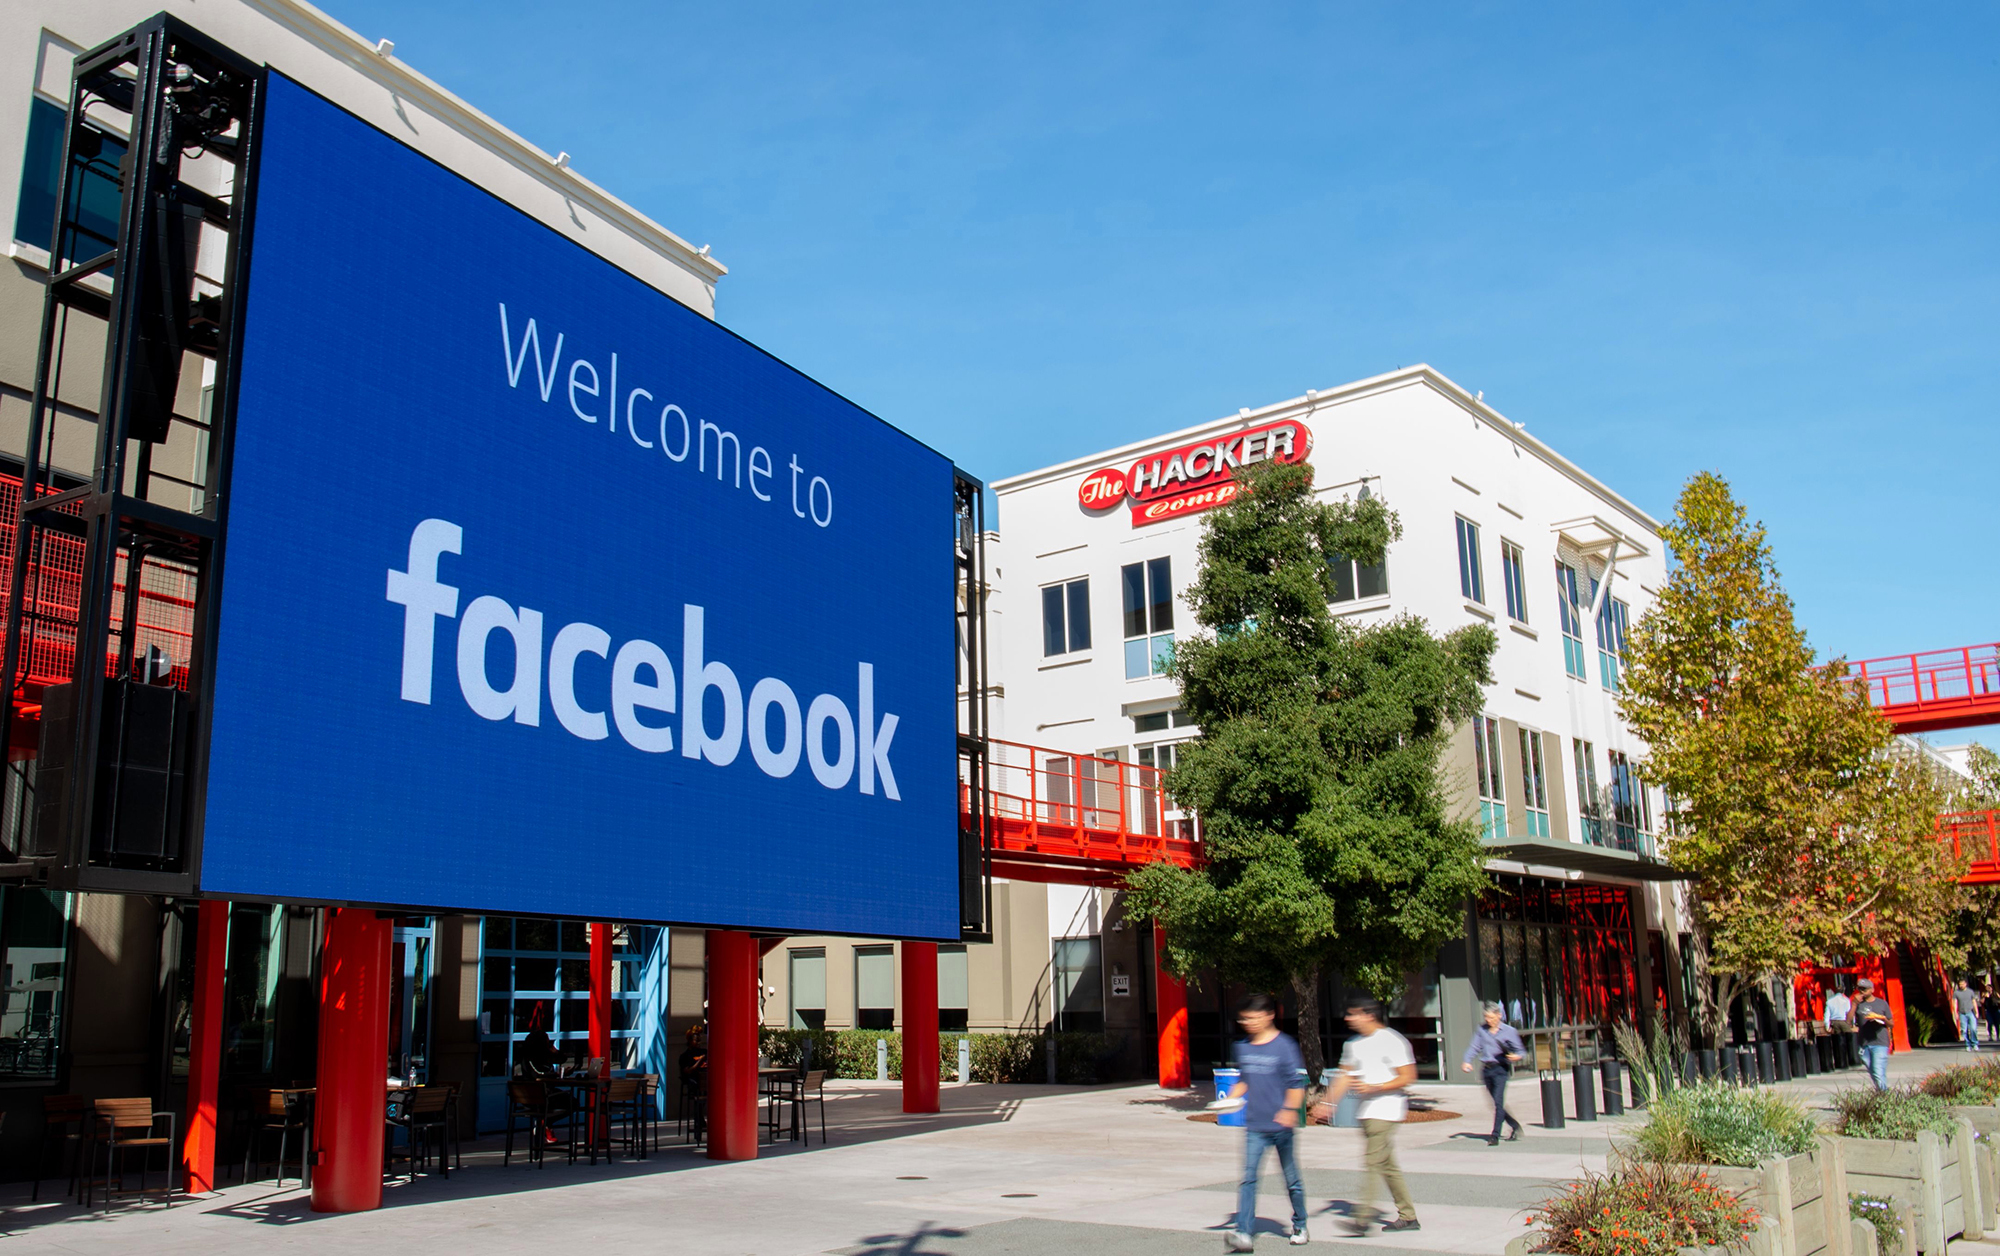 Facebook to Turn Menlo Park Headquarters into Vaccination Site to Speed-Up Drive in US